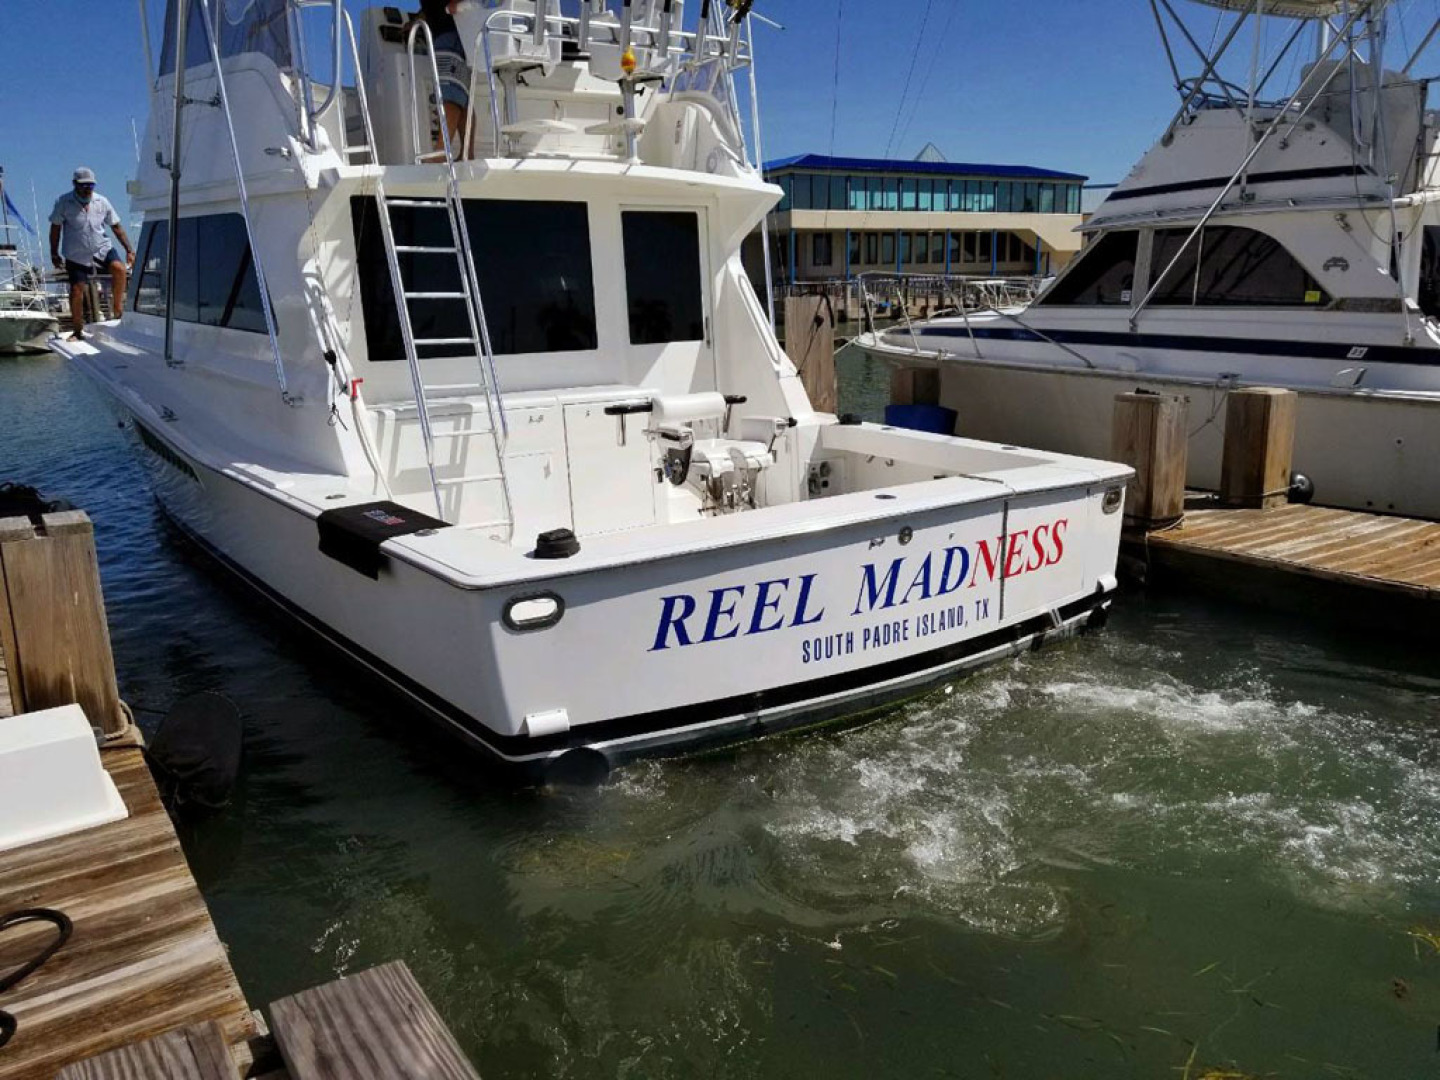 Viking-47 Convertible 1999-Reel Madness South Padre Island-Texas-United States-Stern-1497924 | Thumbnail